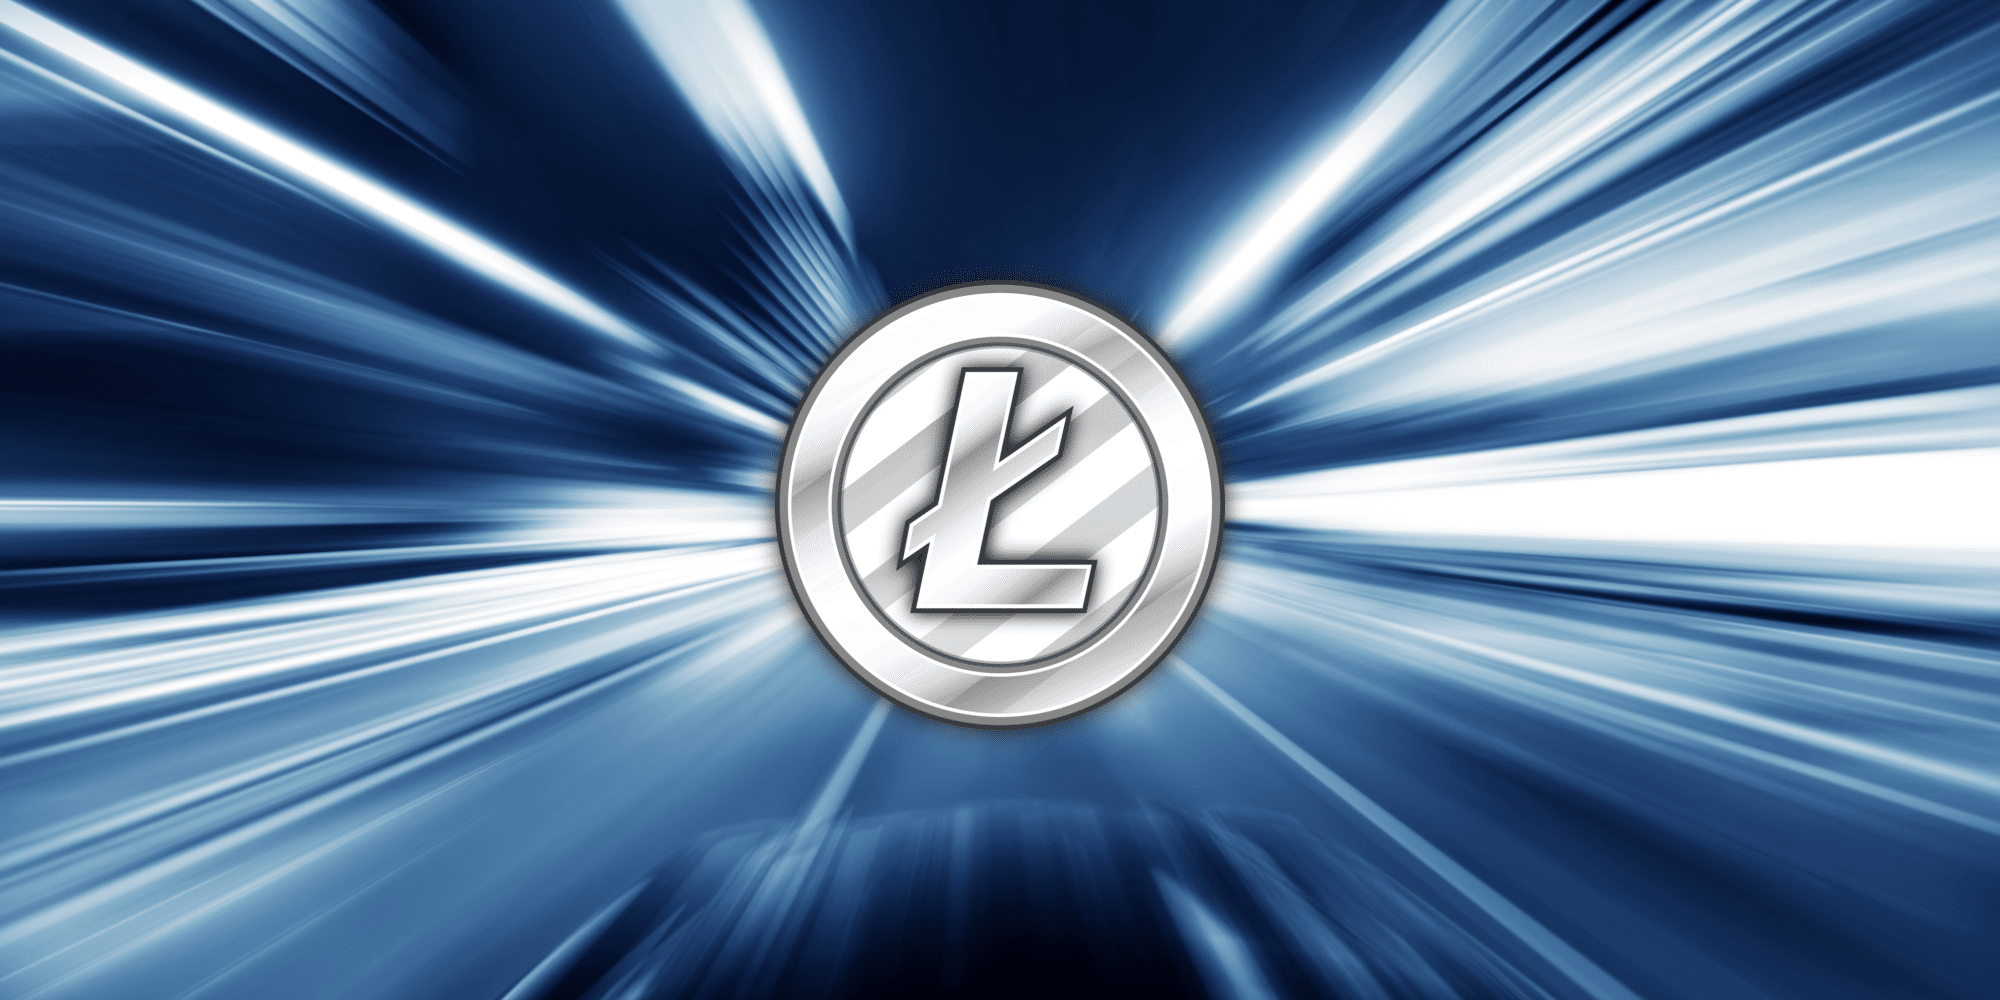 Online casinos with Litecoin cryptocurrency